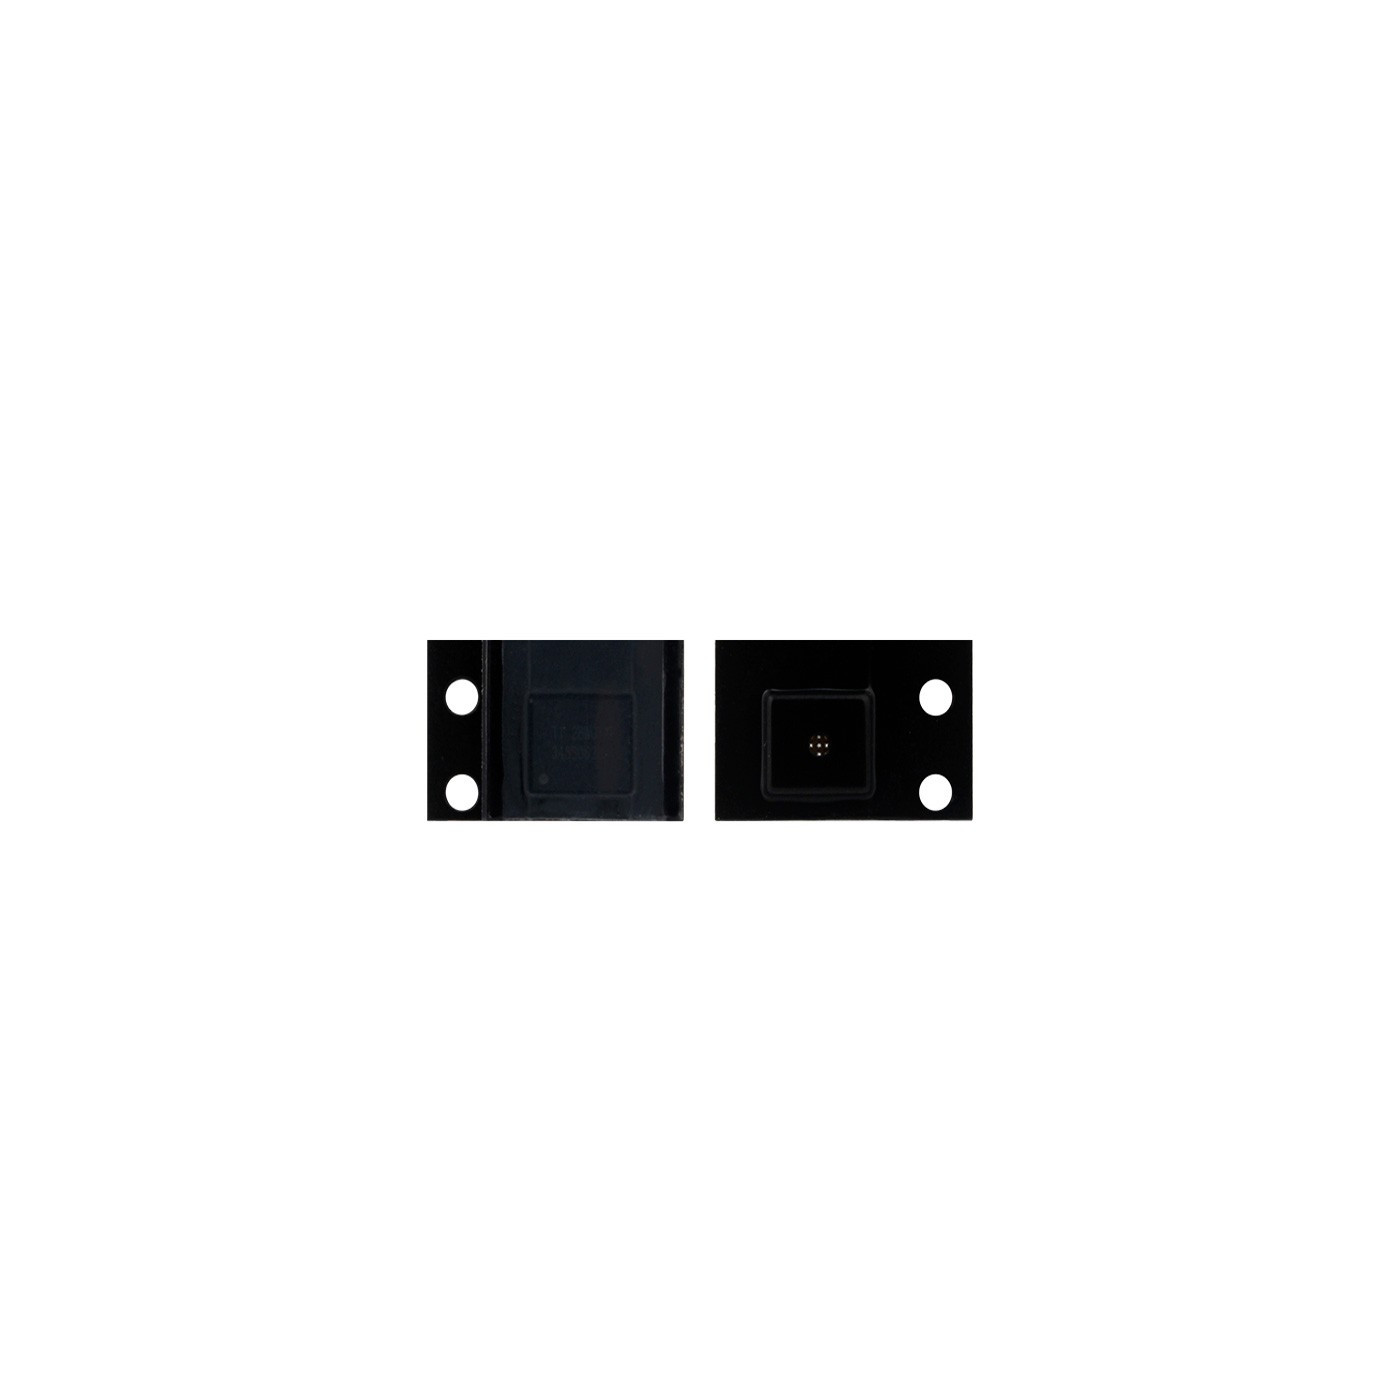 Touch IC for iPhone 5 nero - Black